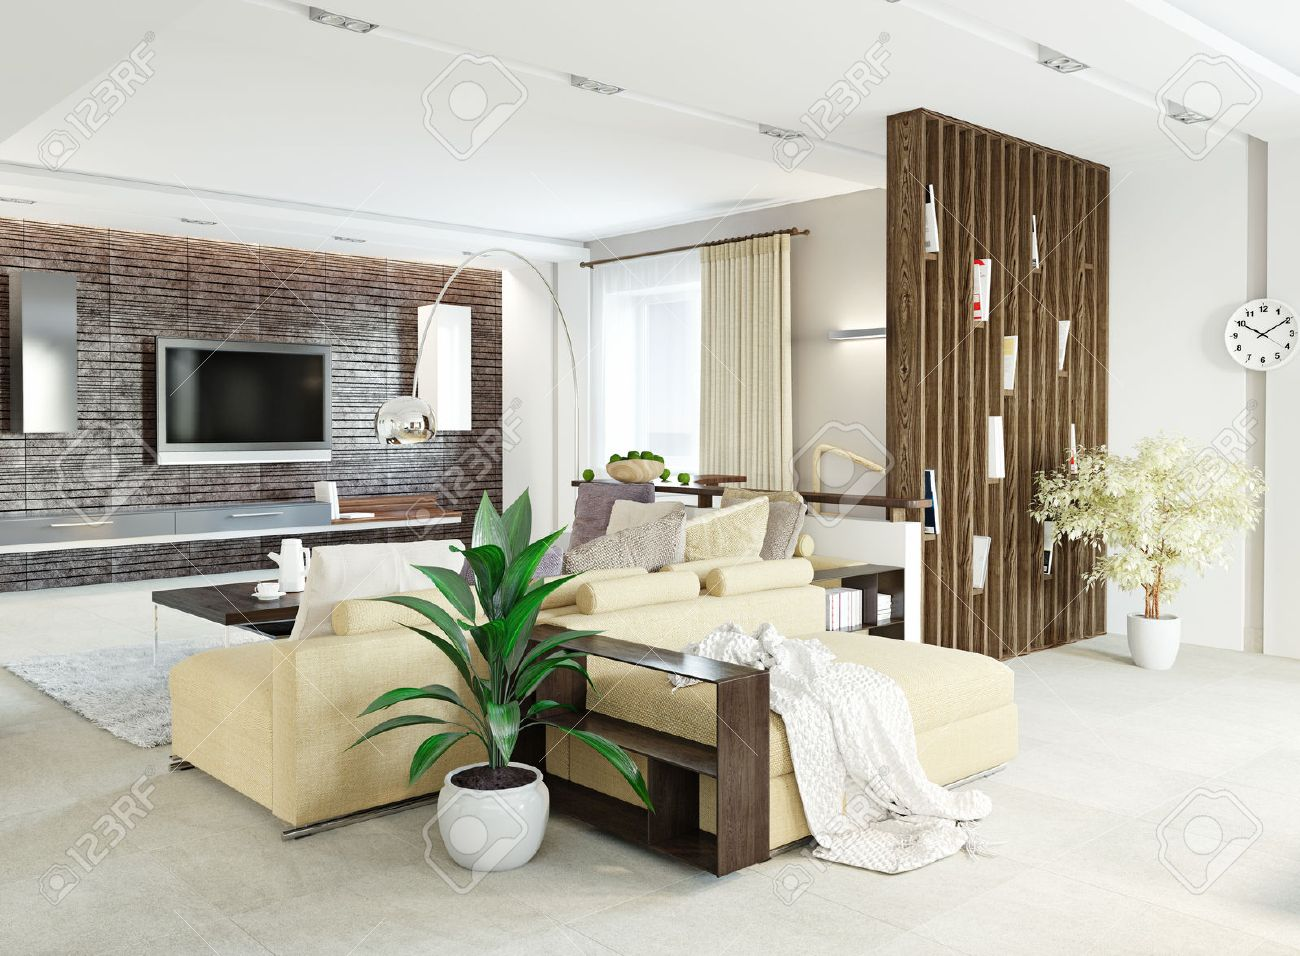 Modern Living Room Interior Design (3d Concept) Stock Photo, Picture ...